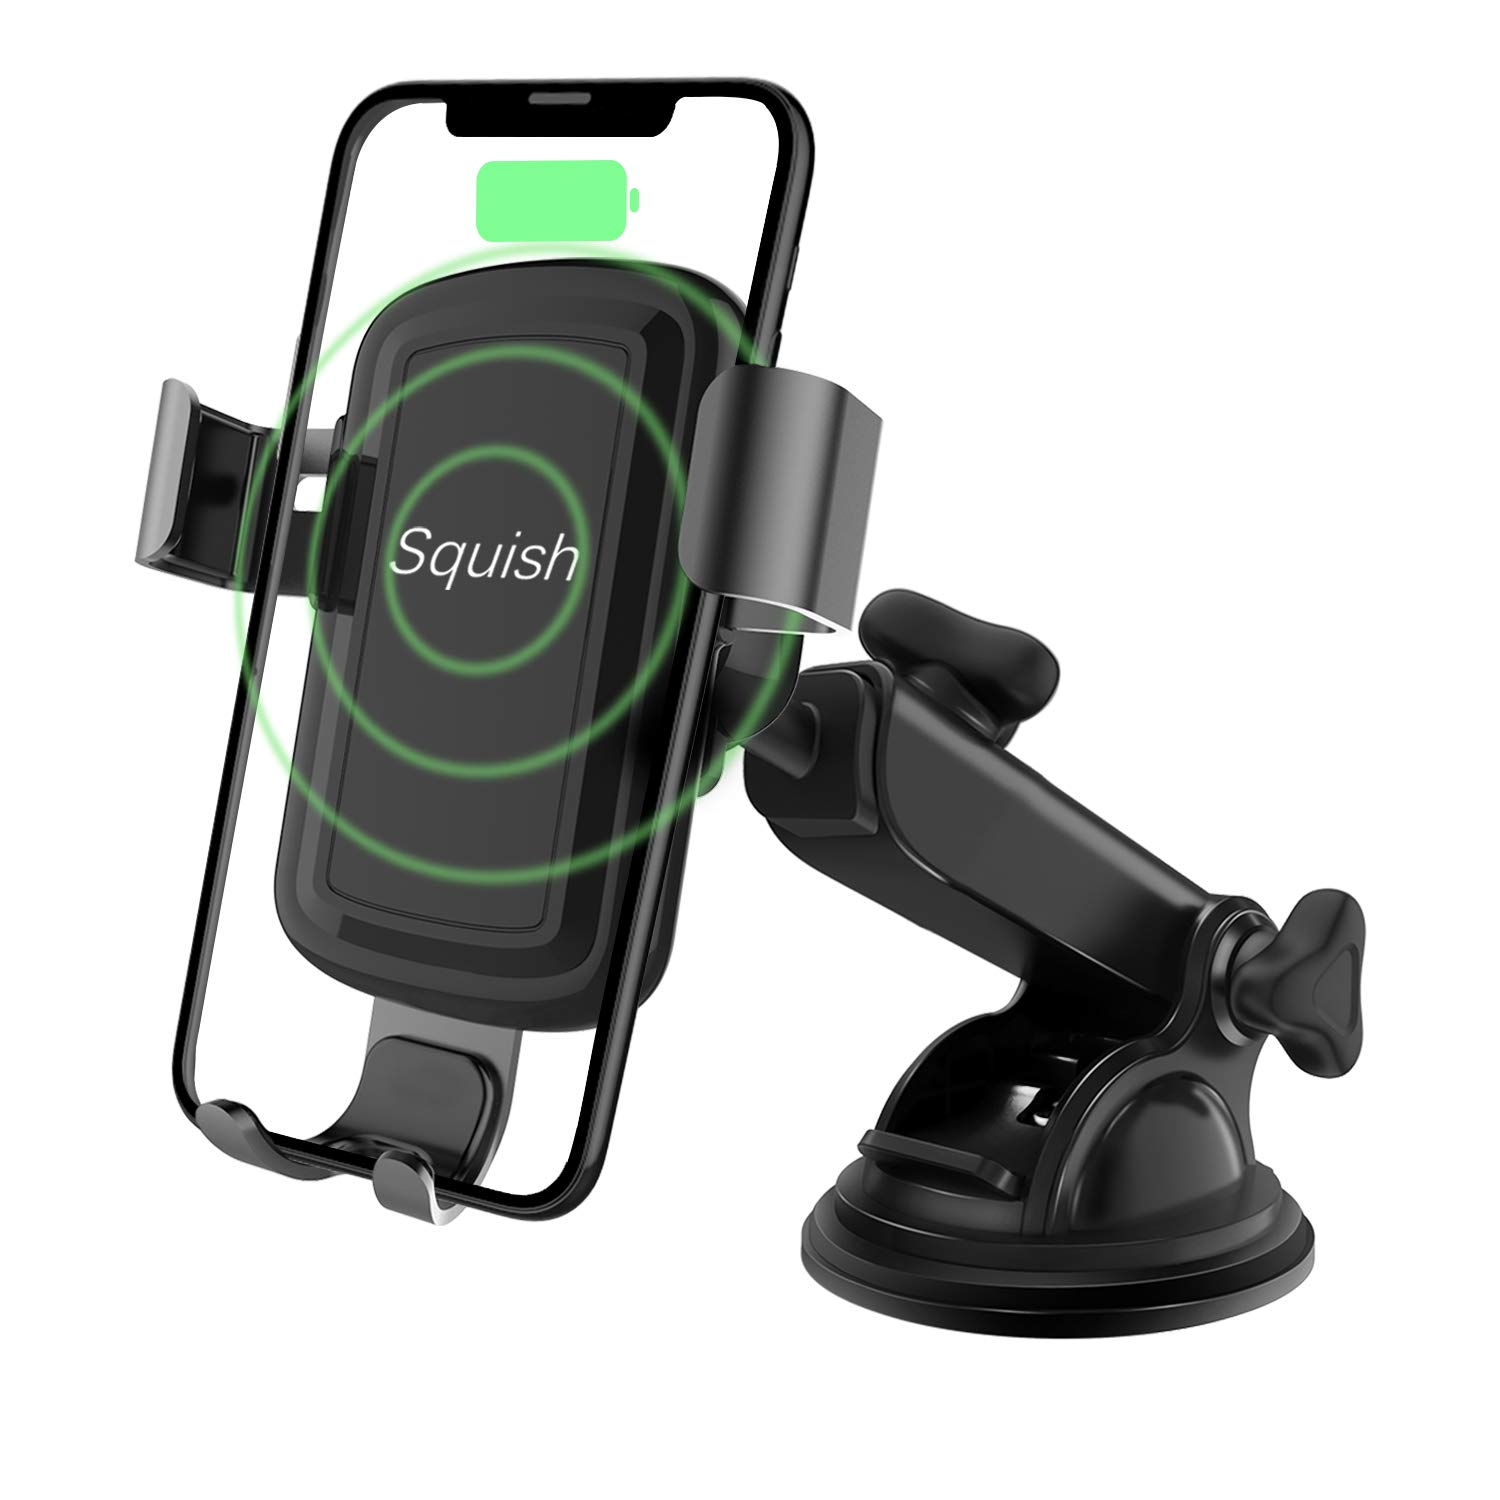 Wireless Charger Car Phone Mount, Squish Qi Fast Charging Wireless Car Charger Mount 10W 7.5W, Cell Phone Holder for iPhone Xs Max/XS/XR/X/8Plus/8 and for Samsung S10/S9/S9+/S8/S8+/Note9/Note8 etc by Squish